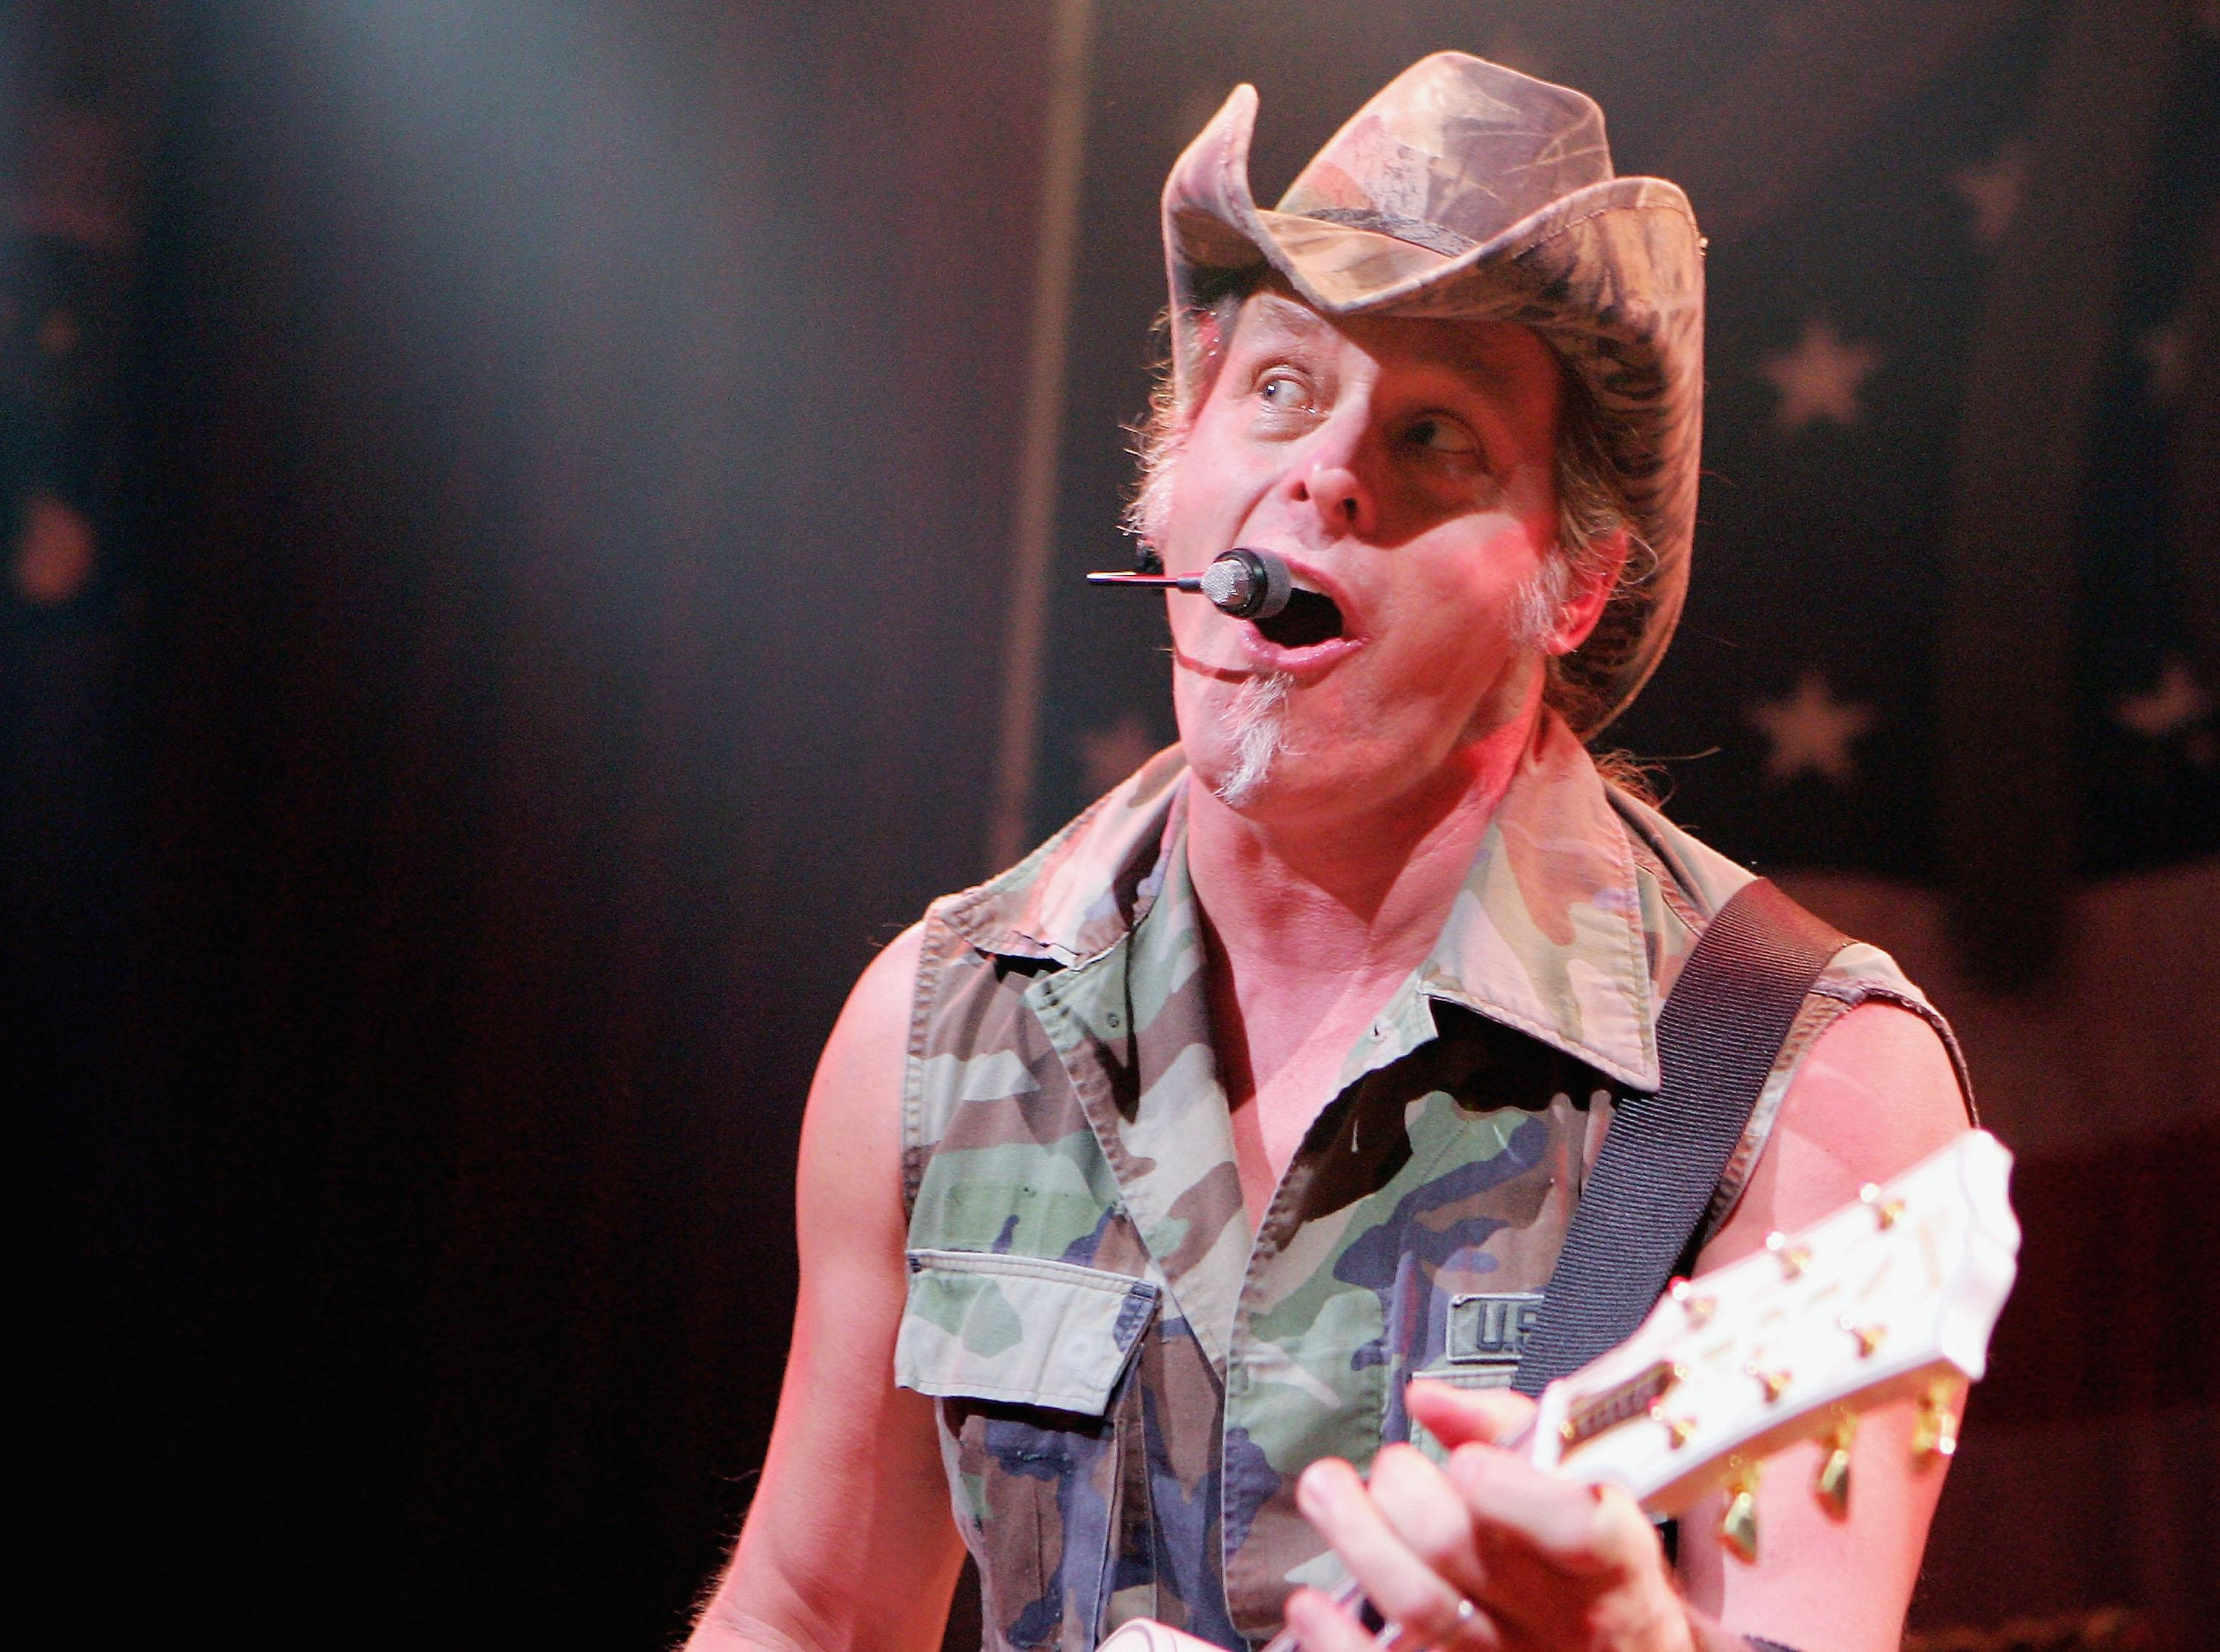 ted-nugent-1538501384287-1538501387234.jpg